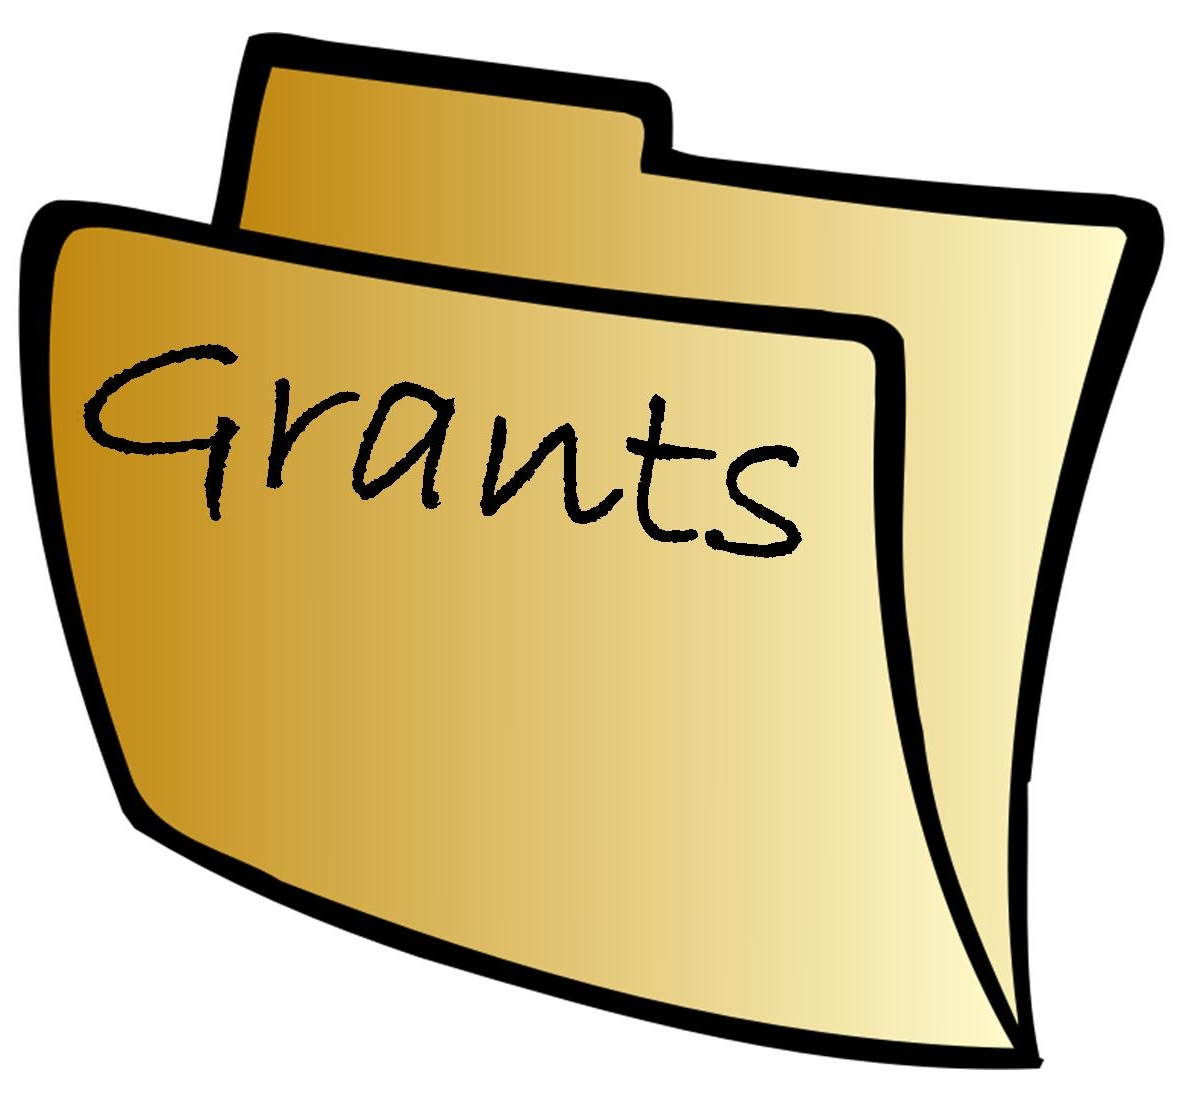 Community Grant Funding Clip Art.